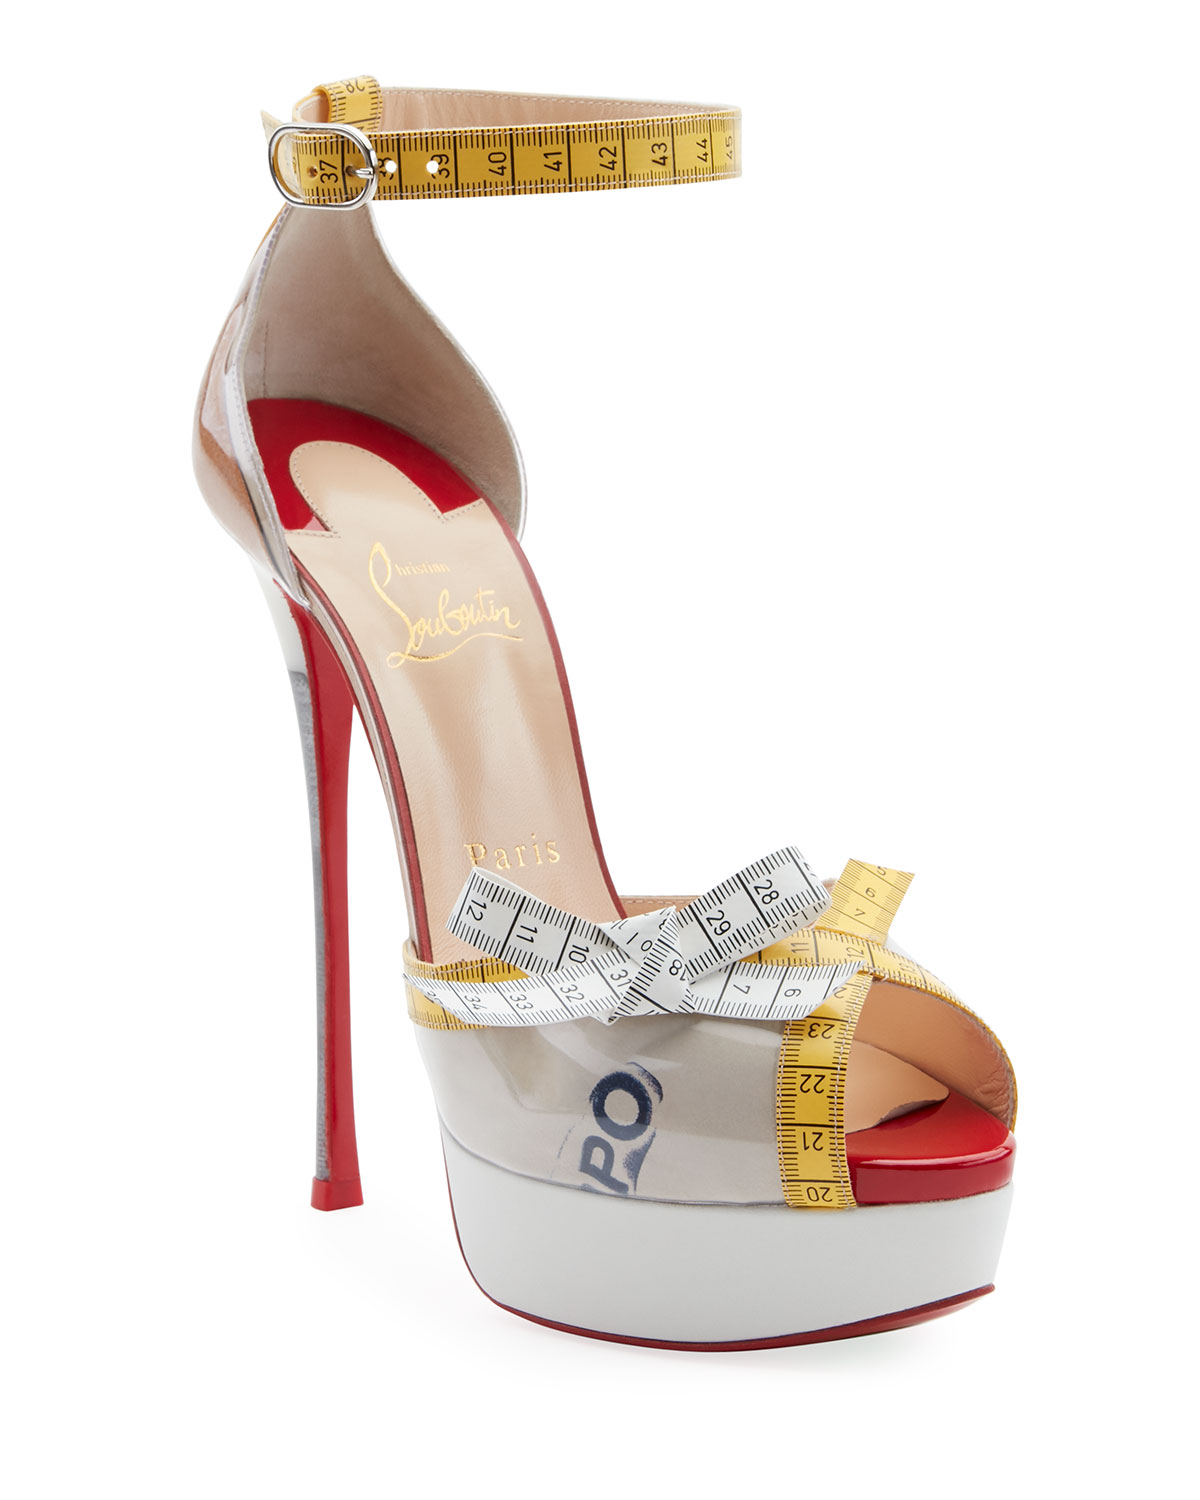 b2f8744277d7 Christian Louboutin Metricathy Measuring Tape Red Sole Pumps ...